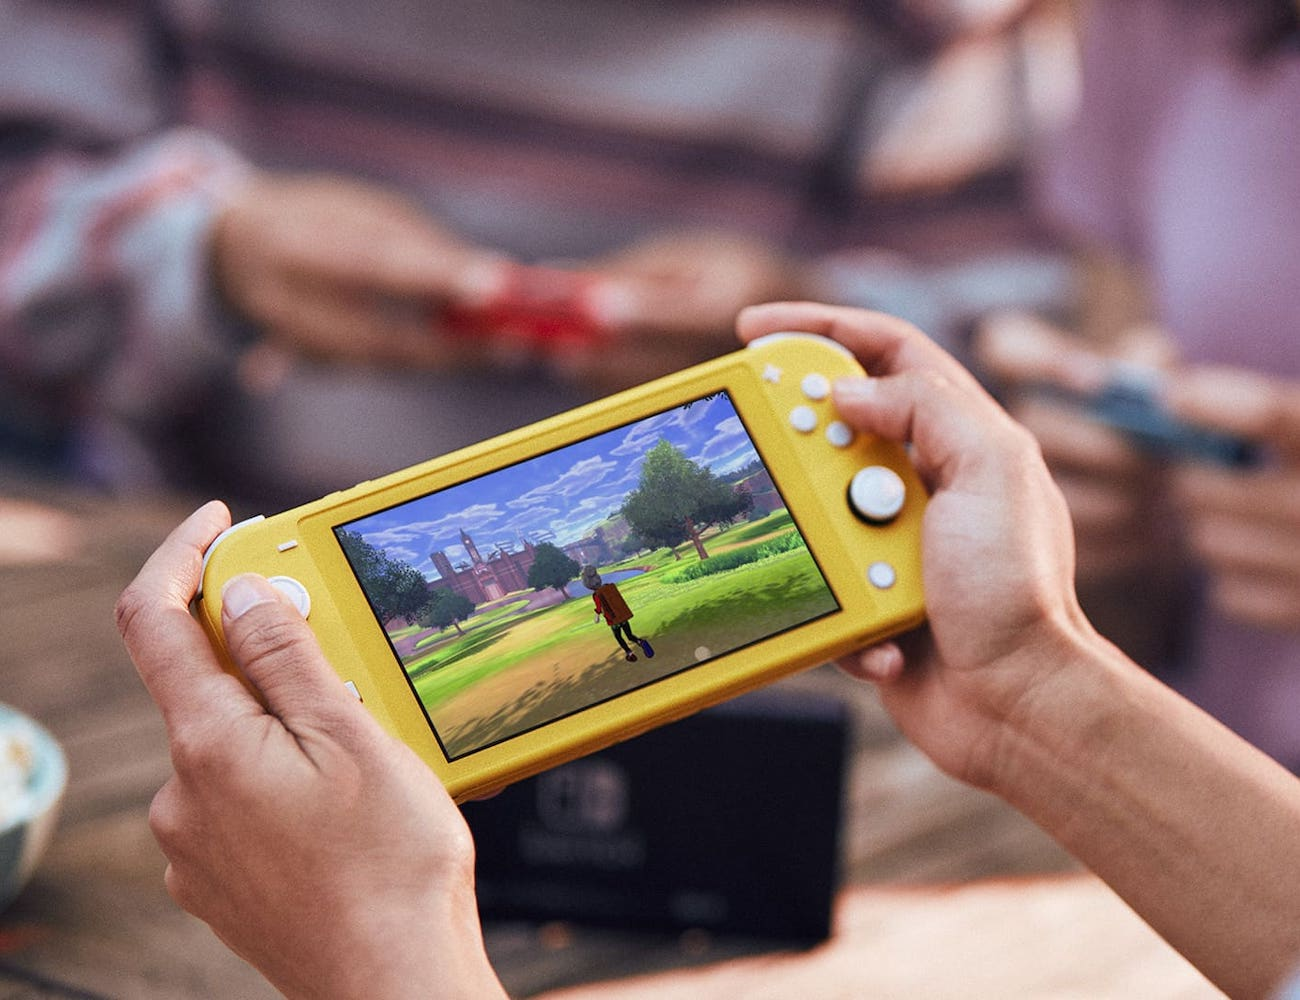 Nintendo Switch Lite Handheld Gaming Console lets you play on the go